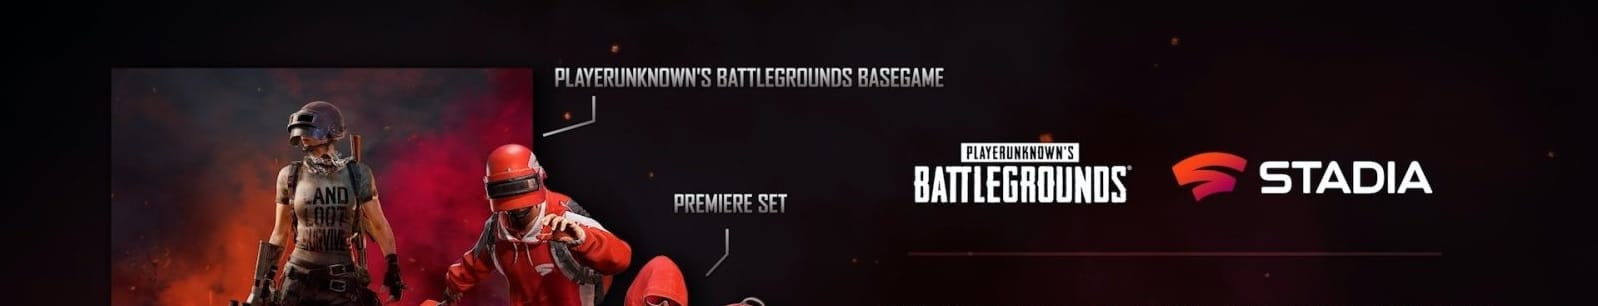 VIRTUOS' FIRST FORAY INTO PLATFORM: PUBG FOR STADIA NOW AVAILABLE